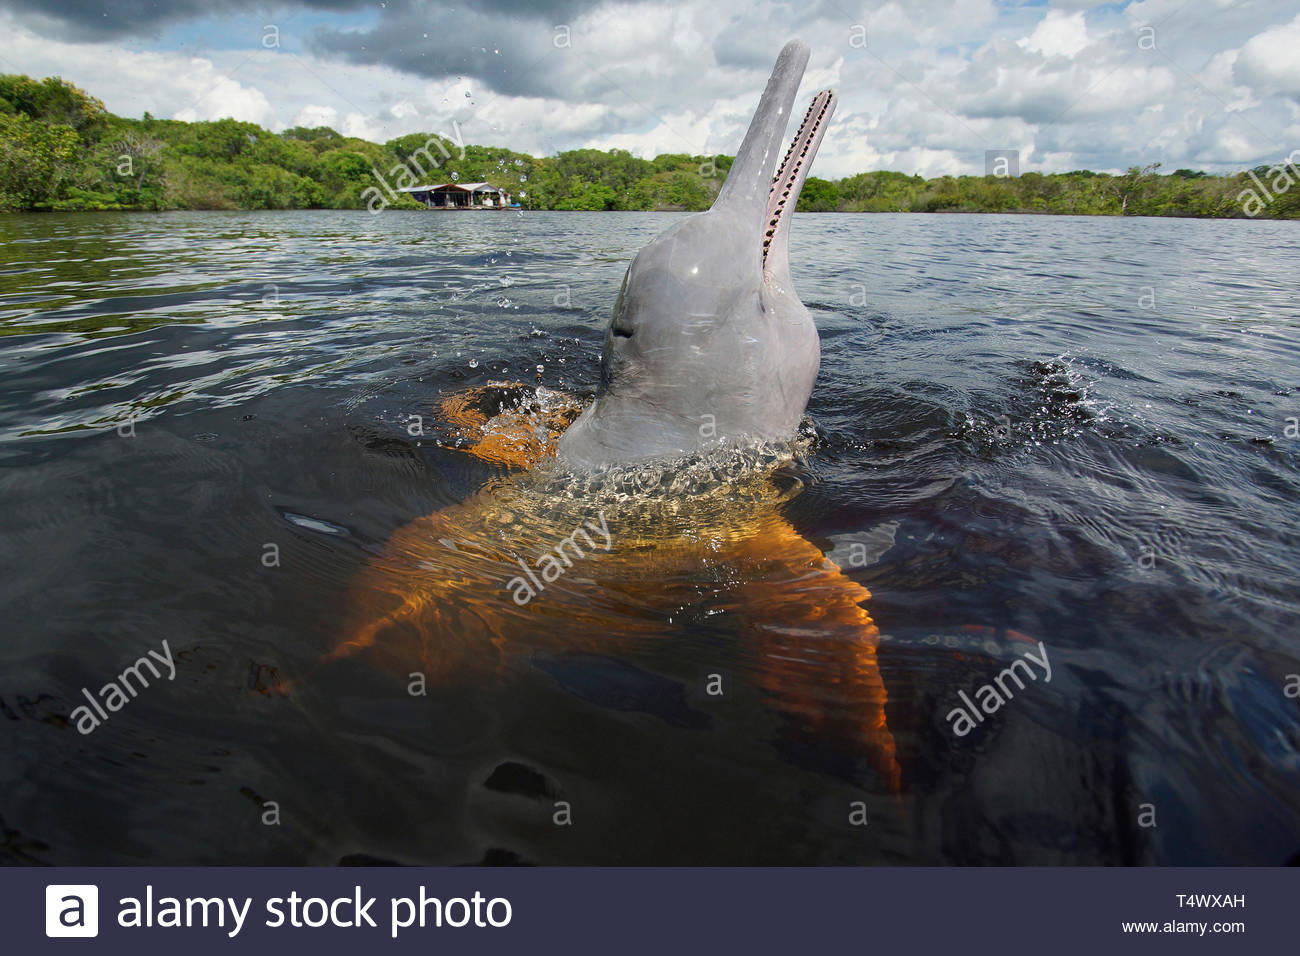 Pink River dolphin, Amazon river dolphin or Boto (Inia geoffrensis) at surface, Acajatuba Lake, Amazon, Brazil - Stock Image